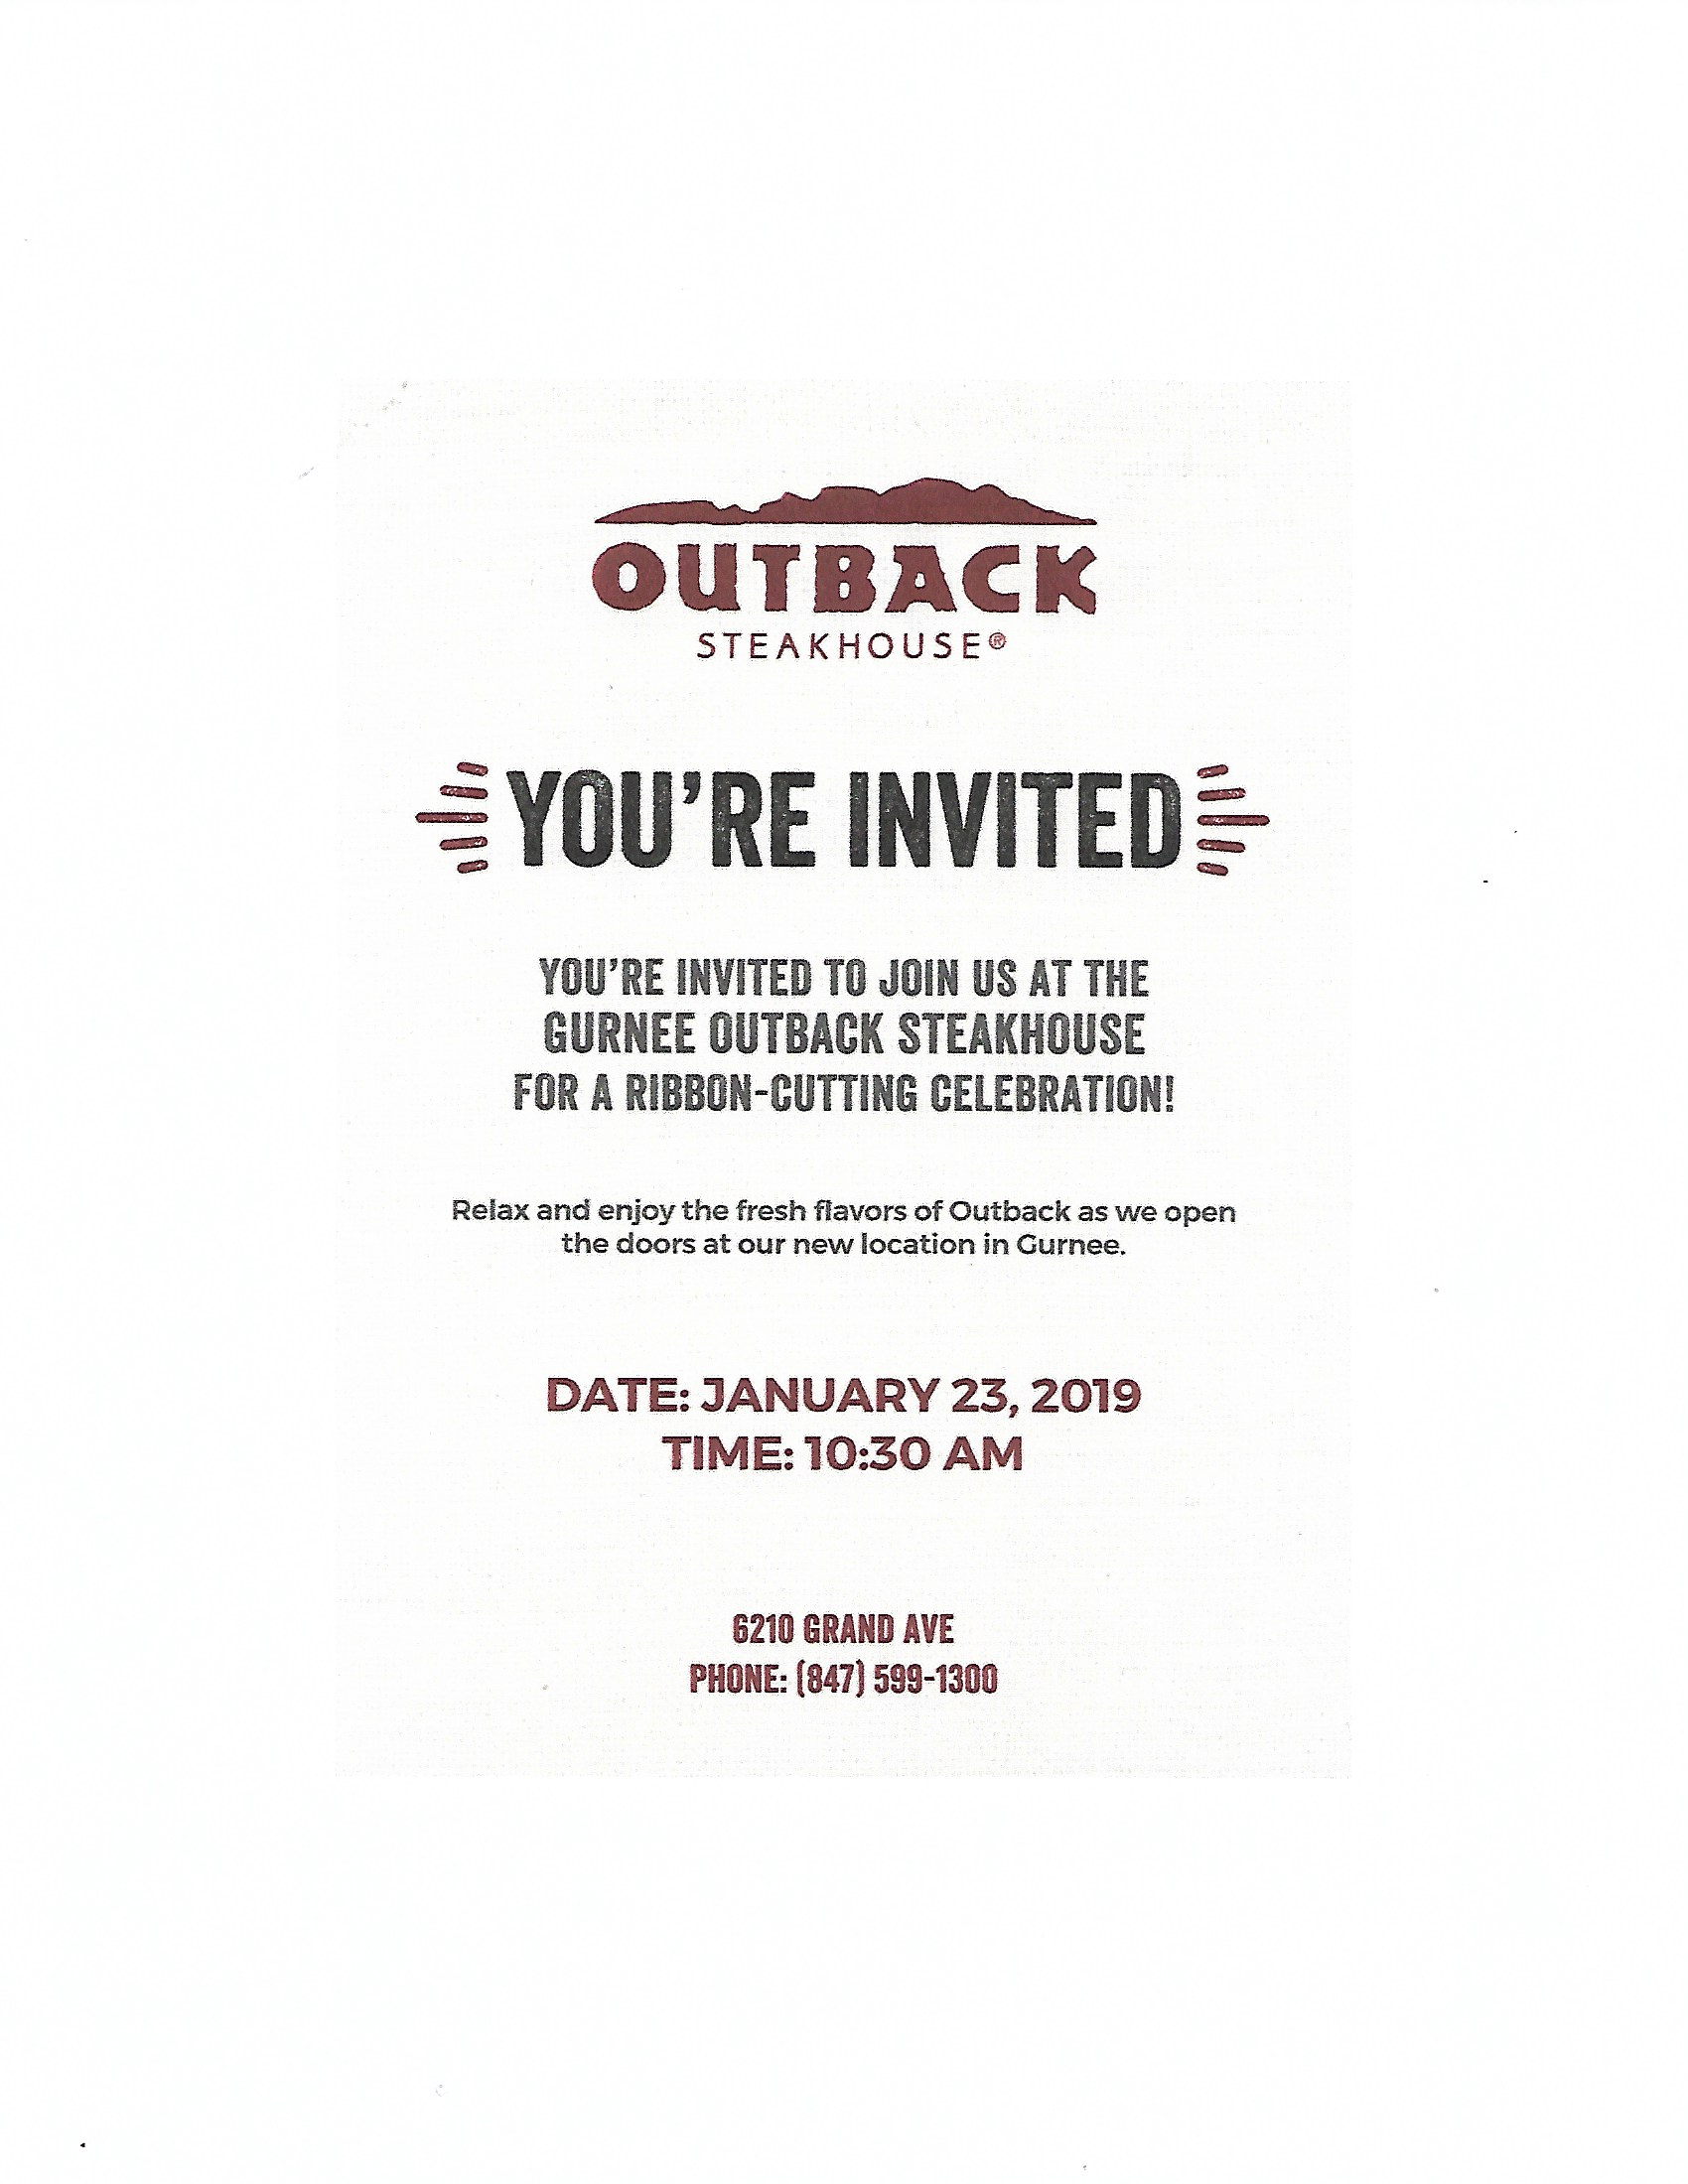 Outback-Grand-Opening-1-23-19.jpg